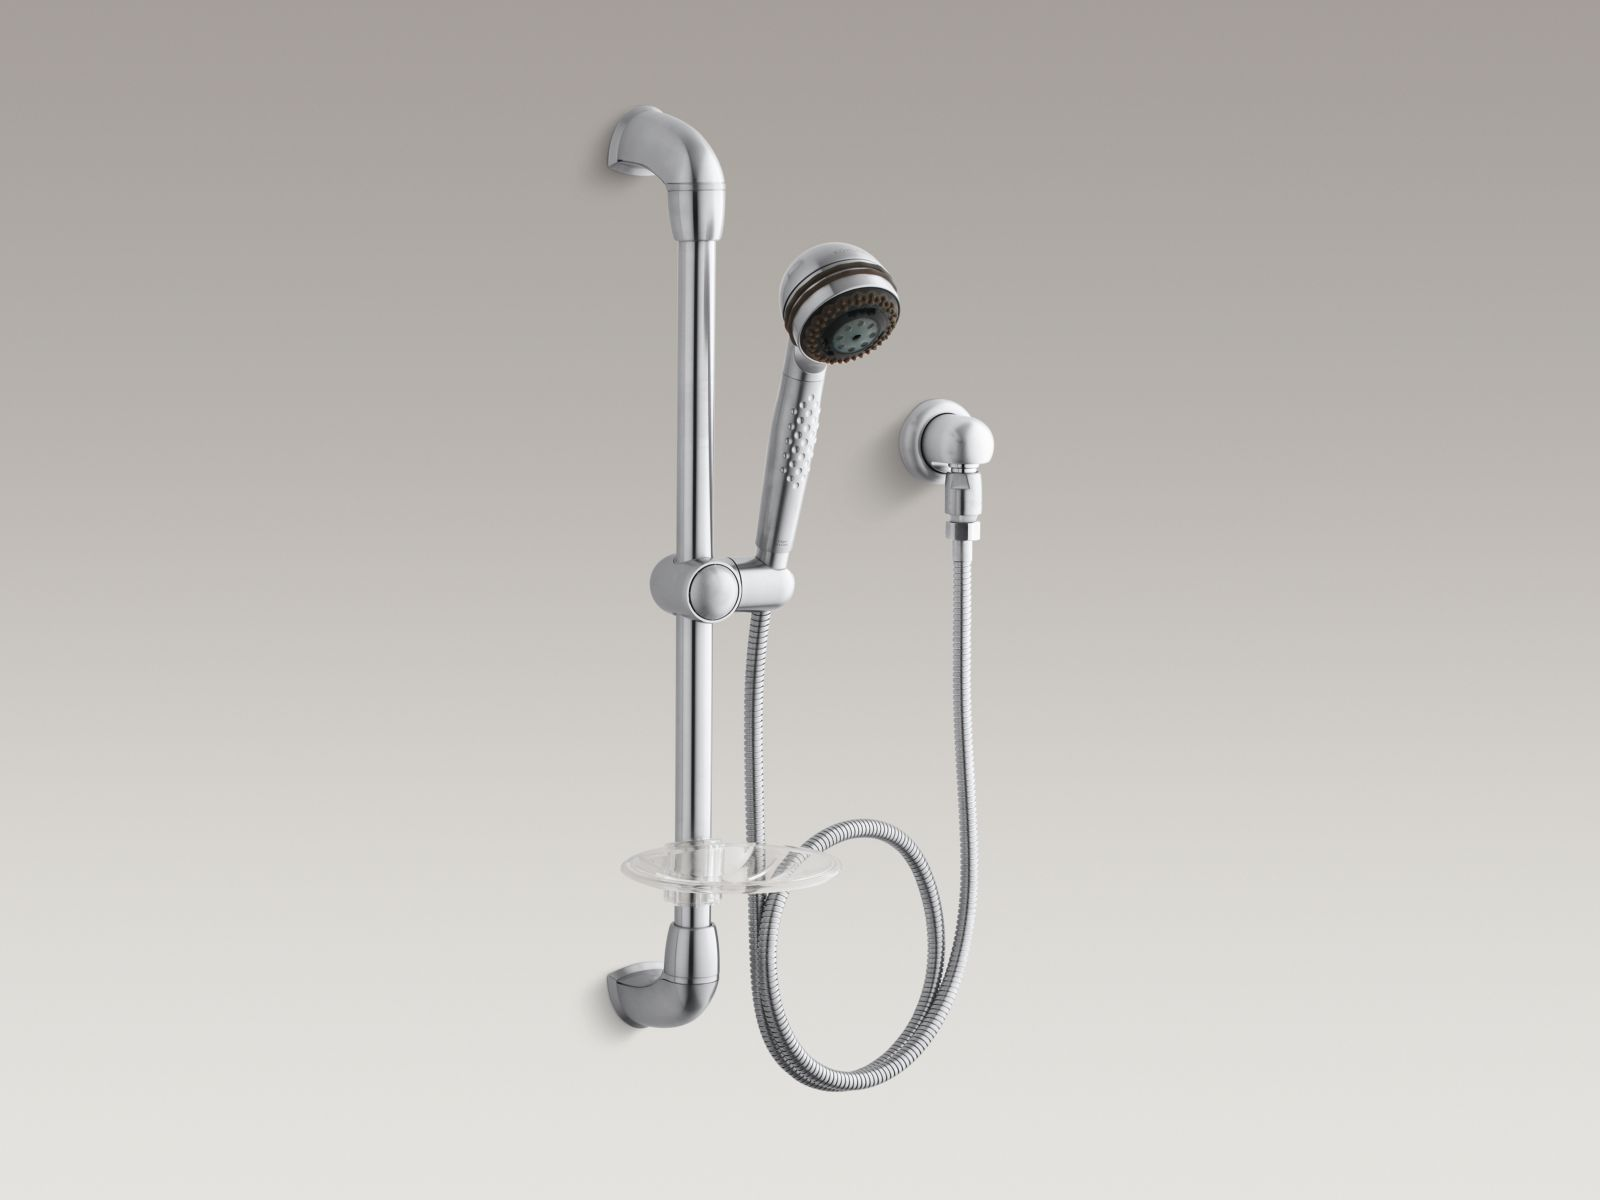 Kohler K-8520-G MasterShower Hotel Handshower Kit Brushed Chrome